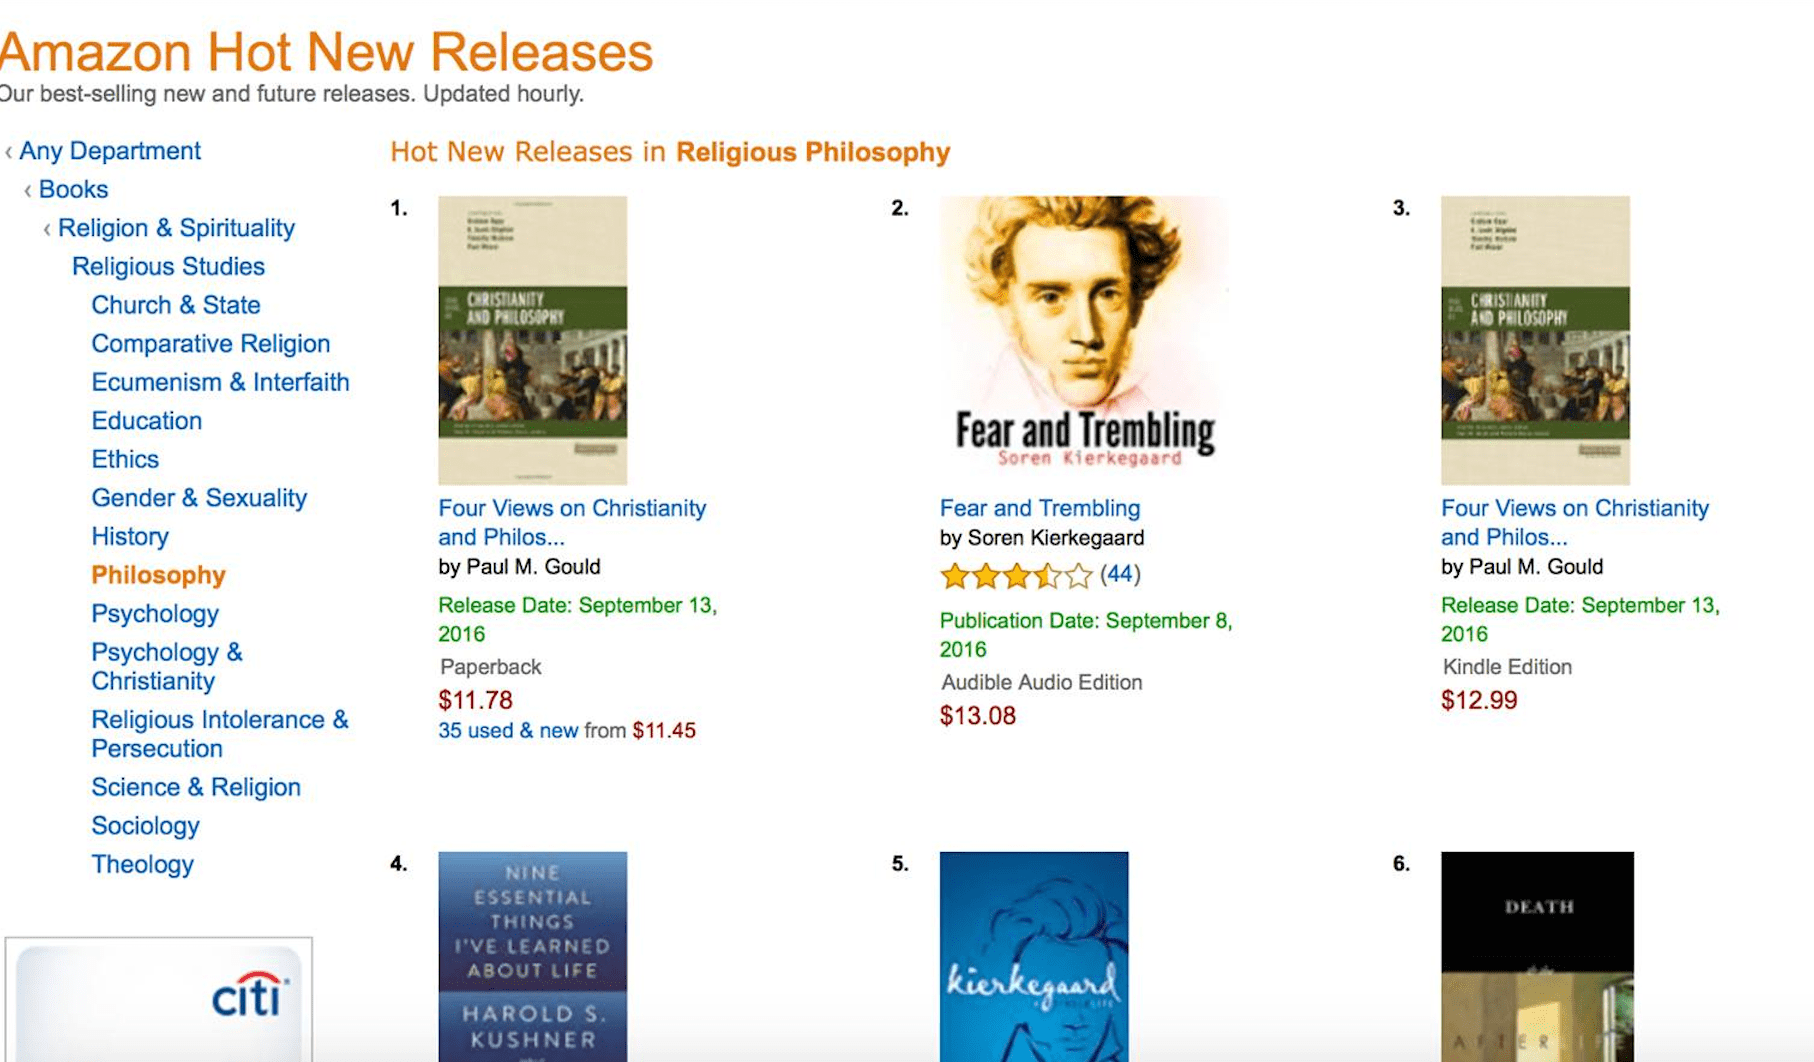 Four Views on Christianity and Philosophy #1 Book in Religious Philosophy Category on Amazon on Release Date!